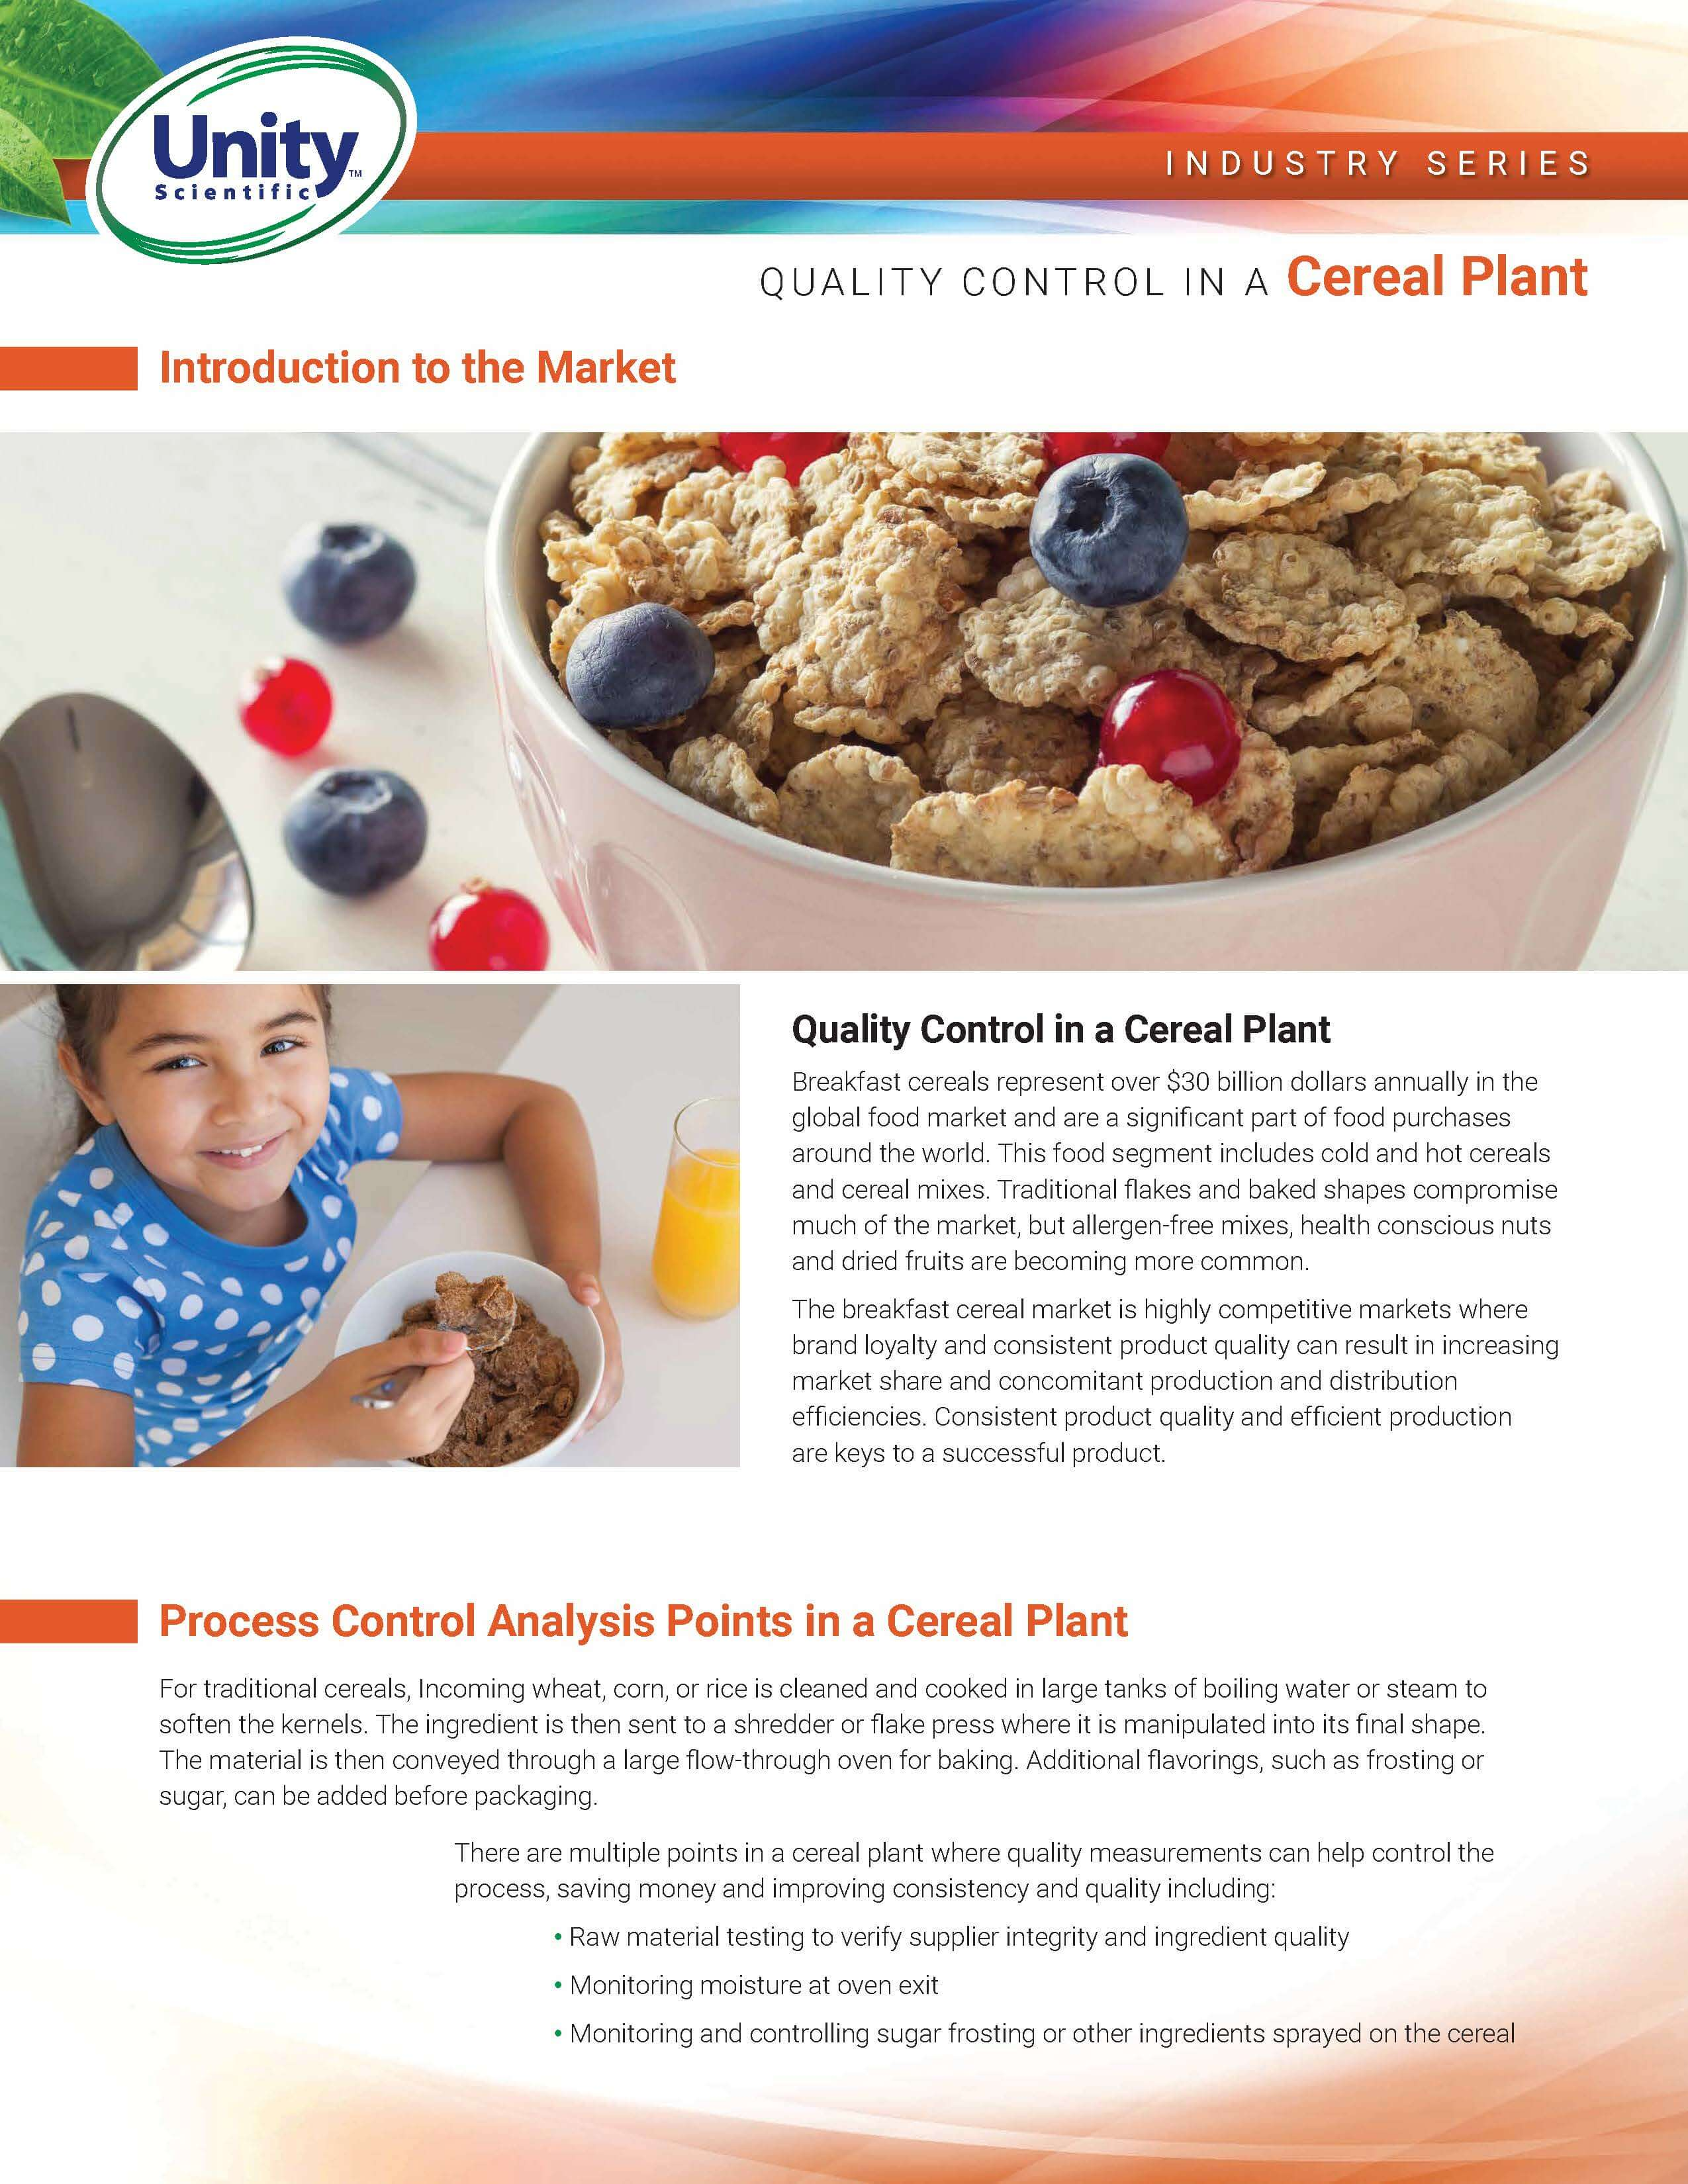 Industry Series - Quality Control In A Cereal Plant